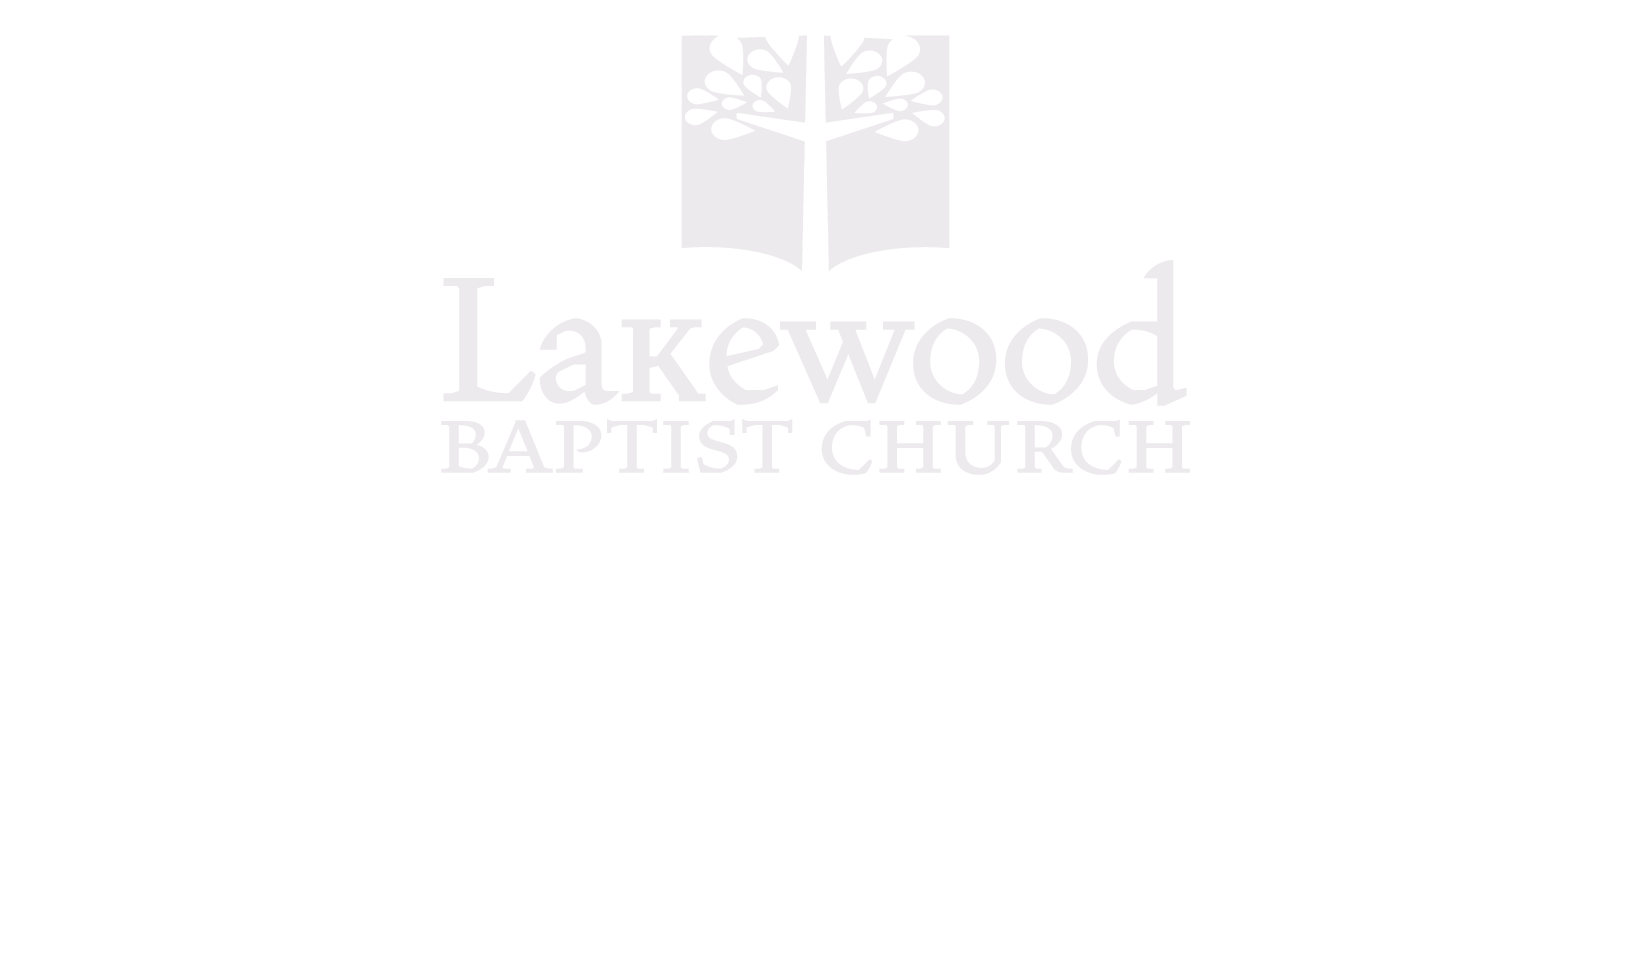 Lakewood Baptist